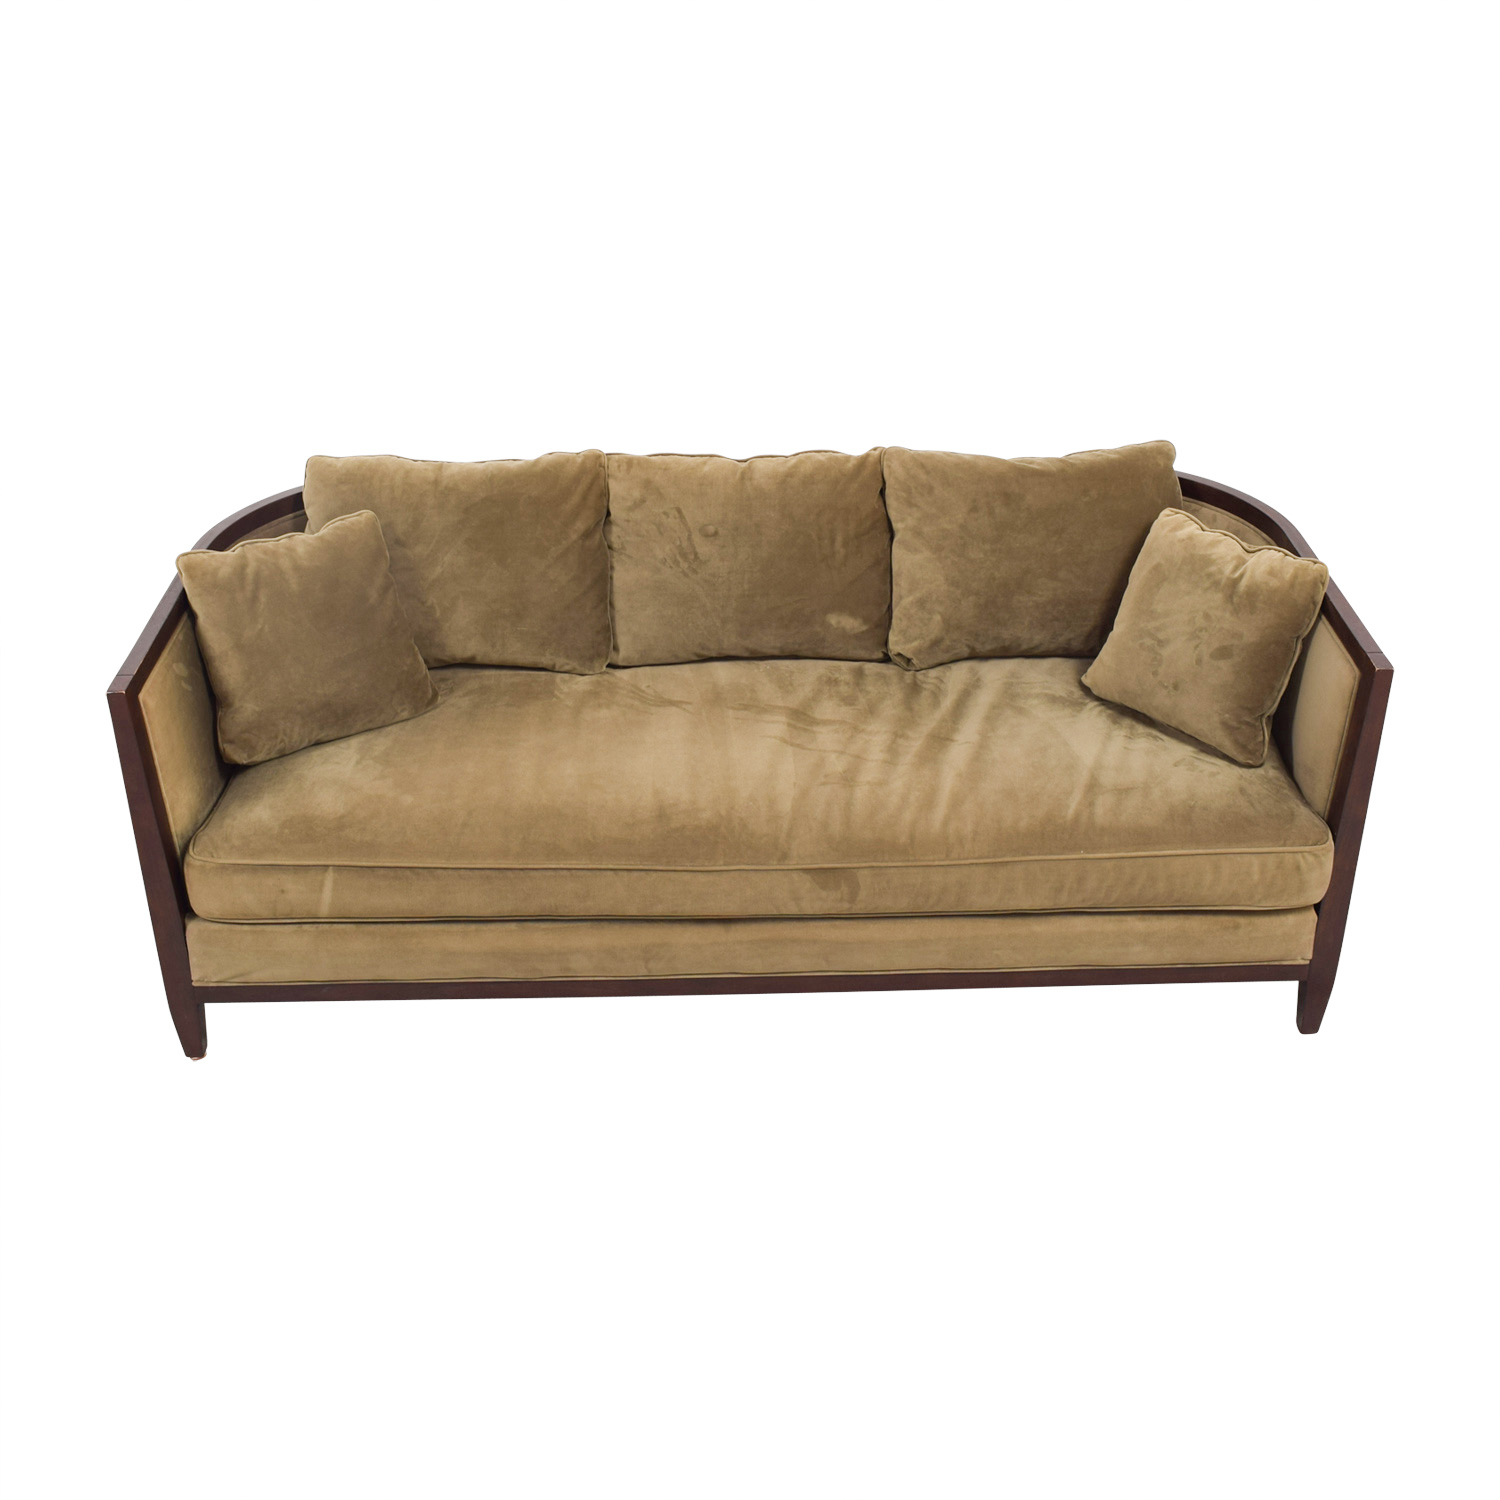 Bloomingdale's Brown Single Cushion Sofa sale